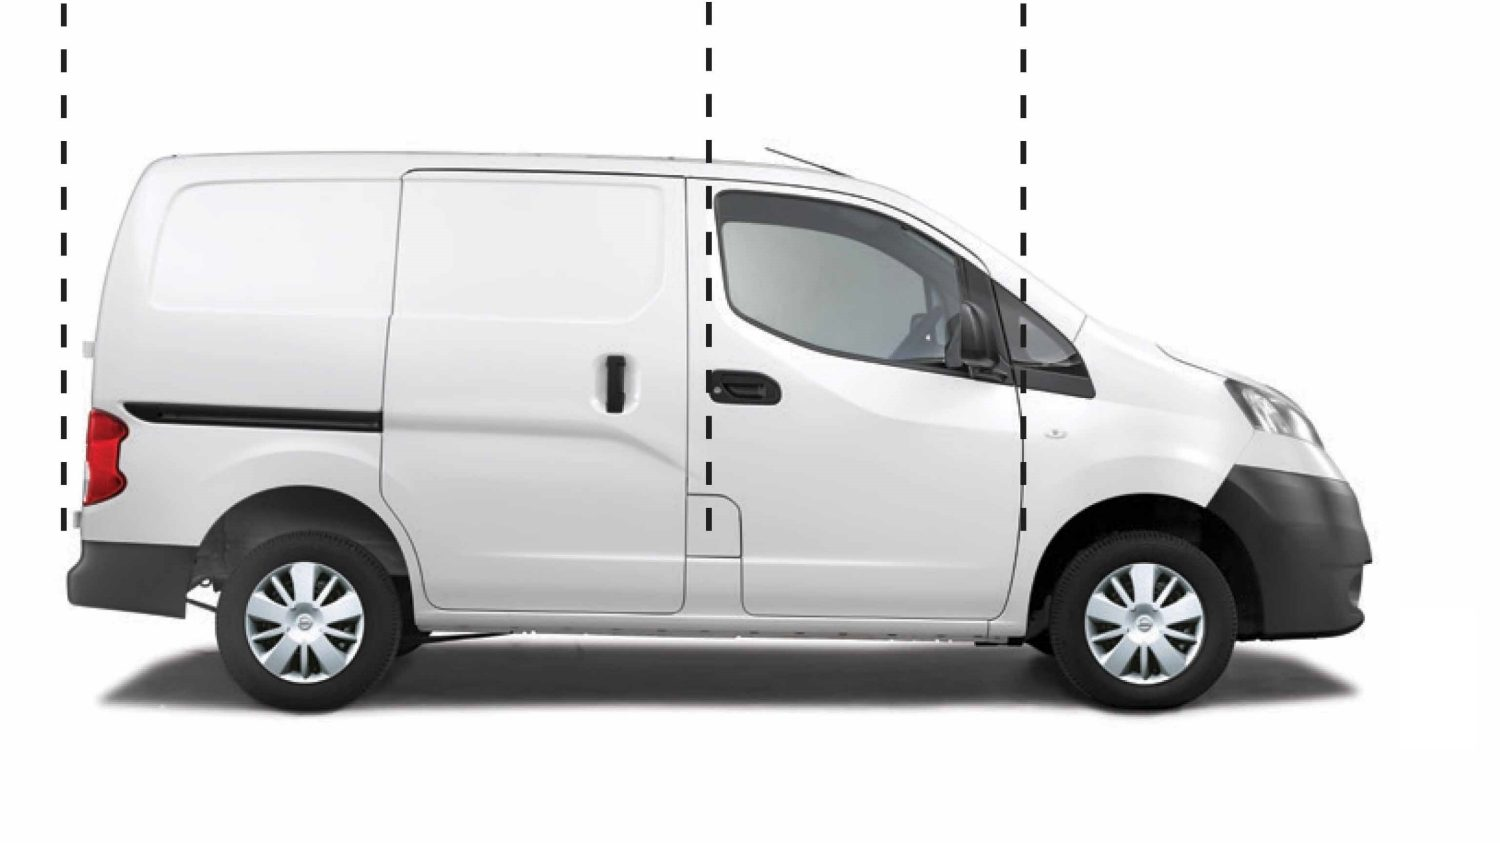 nissan nv200 van dimensions gallery diagram writing sample ideas and guide. Black Bedroom Furniture Sets. Home Design Ideas